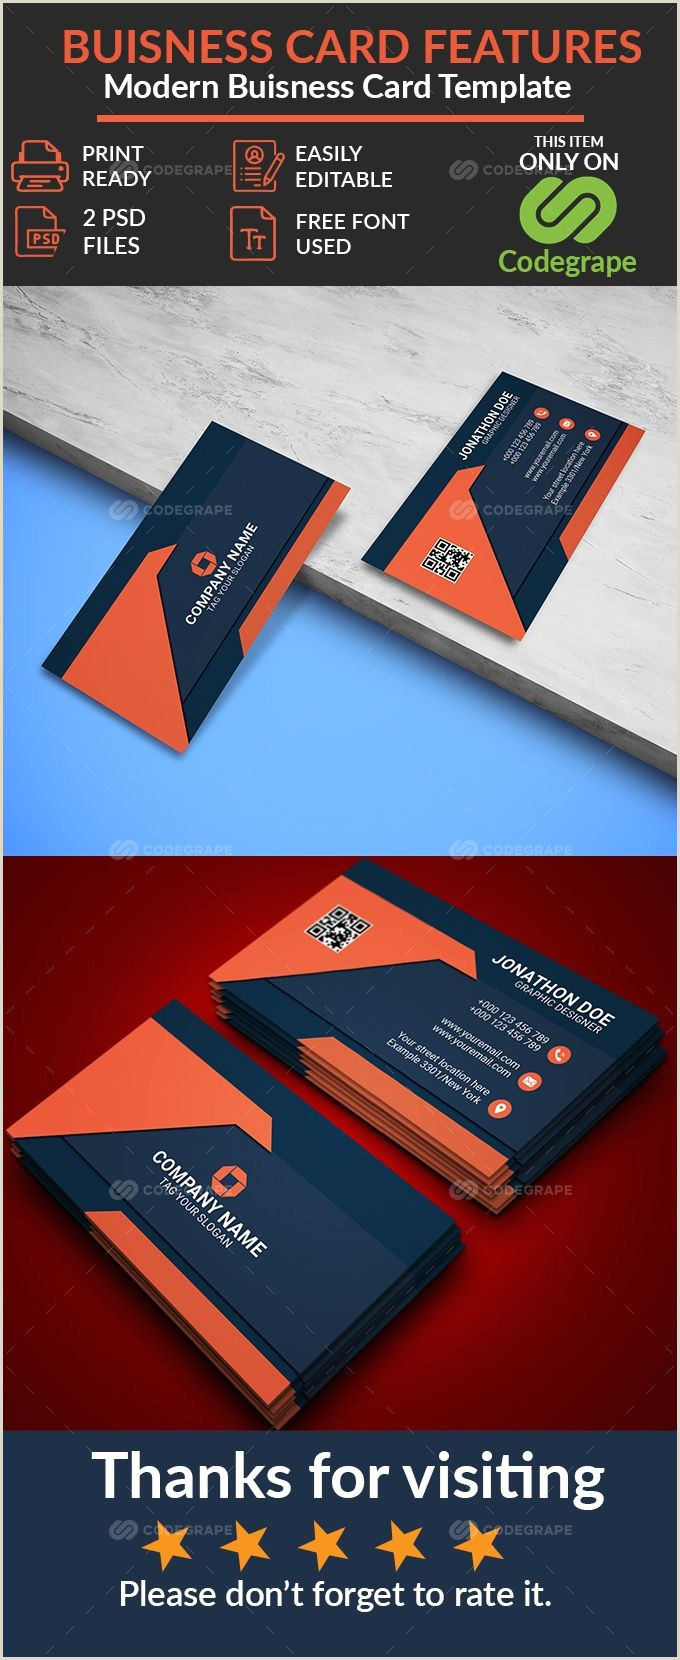 How Big Are Buisness Cards Modern Business Card In 2020